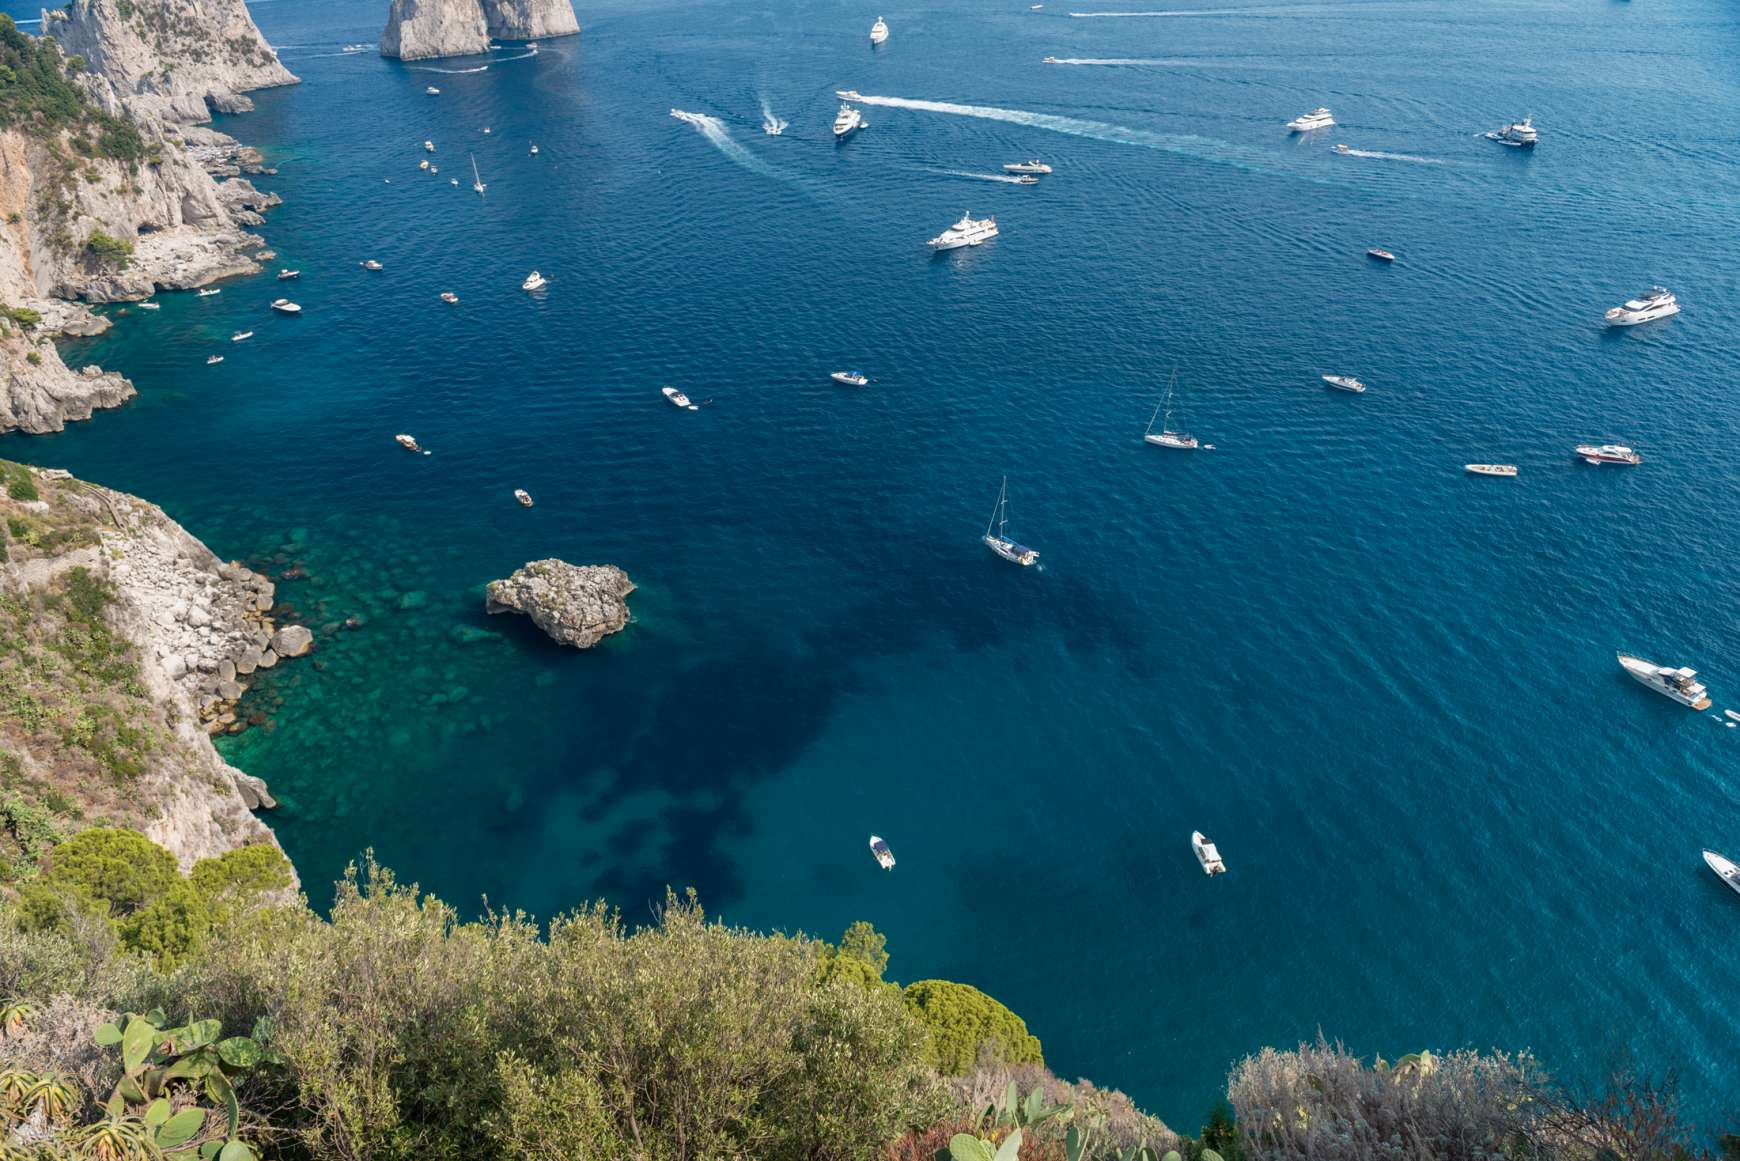 Overview of the bright blue sea from the Amalfi Coast